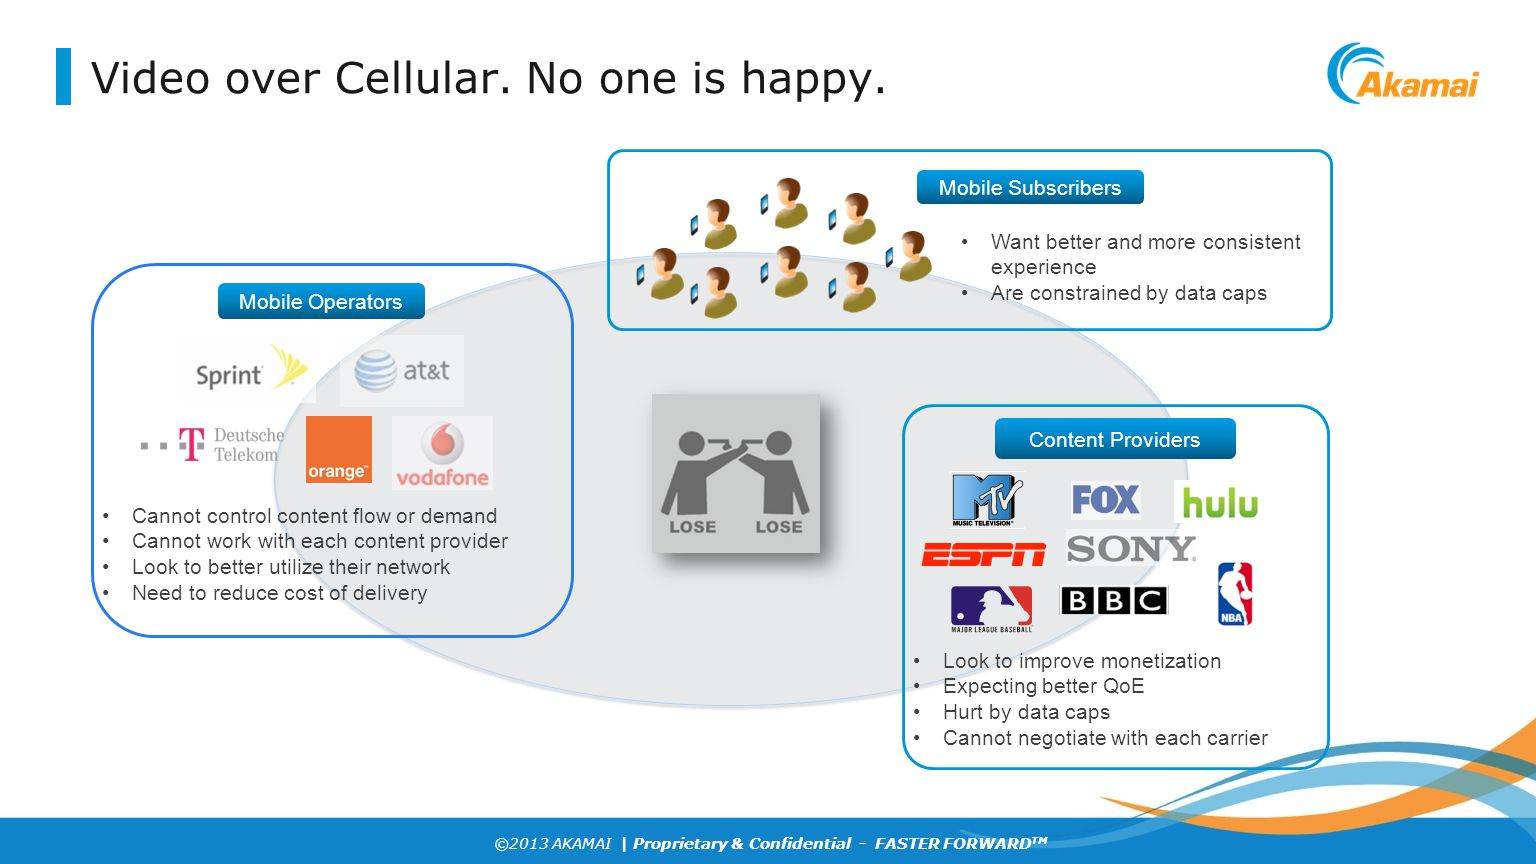 ©2013 AKAMAI | Proprietary & Confidential - FASTER FORWARD TM Video over Cellular. No one is happy. Cannot control content flow or demand Cannot work